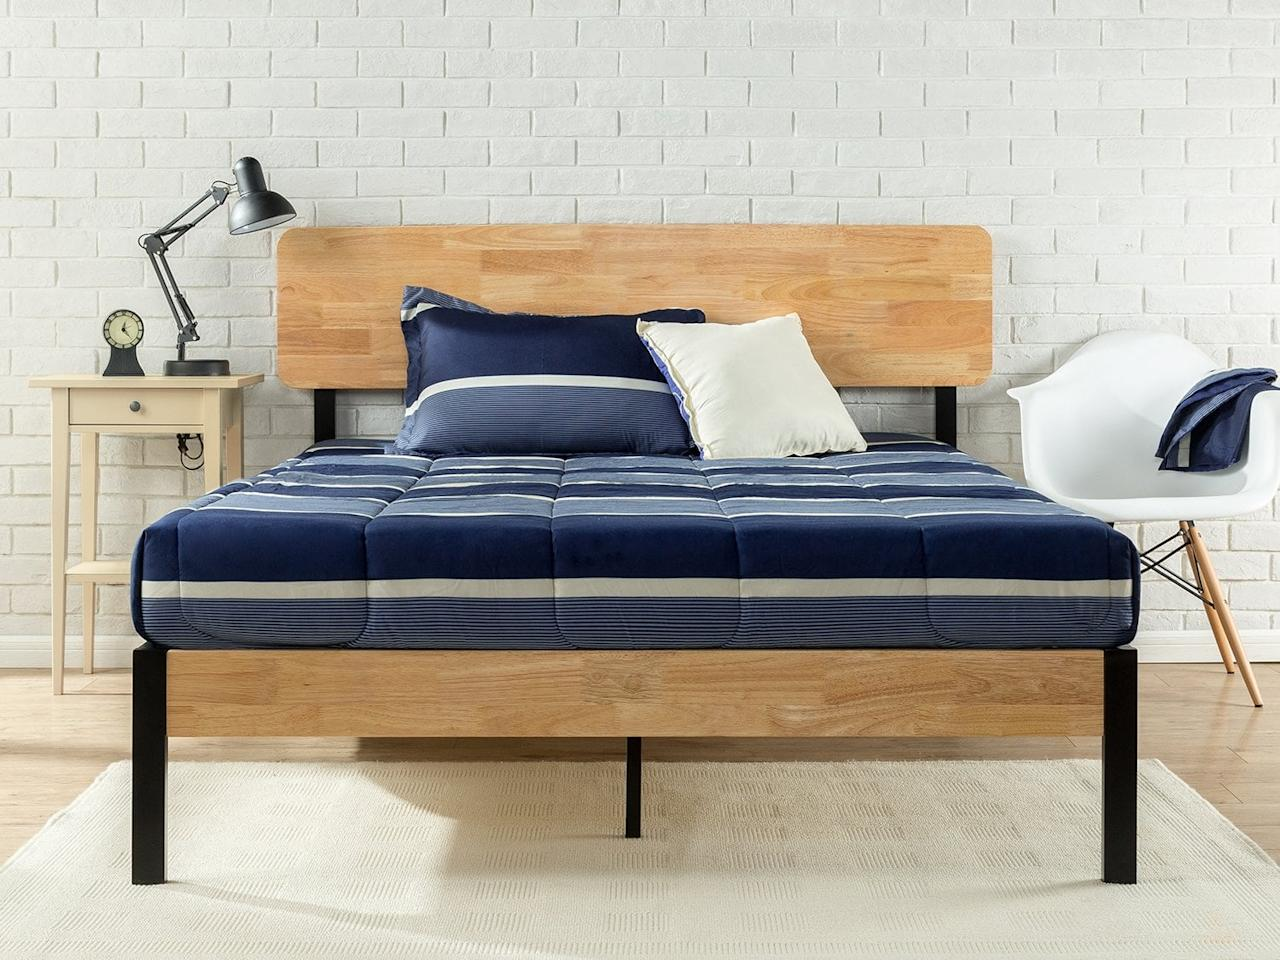 "<p>Looking for a simple and chic bed frame? Get this <a href=""https://www.popsugar.com/buy/Zinus%20Olivia%20Metal%20and%20Wood%20Platform%20Bed-472017?p_name=Zinus%20Olivia%20Metal%20and%20Wood%20Platform%20Bed&retailer=amazon.com&price=160&evar1=casa%3Aus&evar9=46417524&evar98=https%3A%2F%2Fwww.popsugar.com%2Fhome%2Fphoto-gallery%2F46417524%2Fimage%2F46417913%2FZinus-Olivia-Metal-Wood-Platform-Bed&list1=shopping%2Cfurniture%2Cbedrooms%2Chome%20shopping&prop13=mobile&pdata=1"" rel=""nofollow"" data-shoppable-link=""1"" target=""_blank"" class=""ga-track"" data-ga-category=""Related"" data-ga-label=""https://www.amazon.com/Zinus-Tuscan-Metal-Platform-Support/dp/B06WWF1P78/ref=sr_1_83?keywords=bed%2Bframe%2Bunder%2B%24250&amp;qid=1563994036&amp;s=gateway&amp;sr=8-83&amp;th=1"" data-ga-action=""In-Line Links"">Zinus Olivia Metal and Wood Platform Bed</a> ($160).</p>"